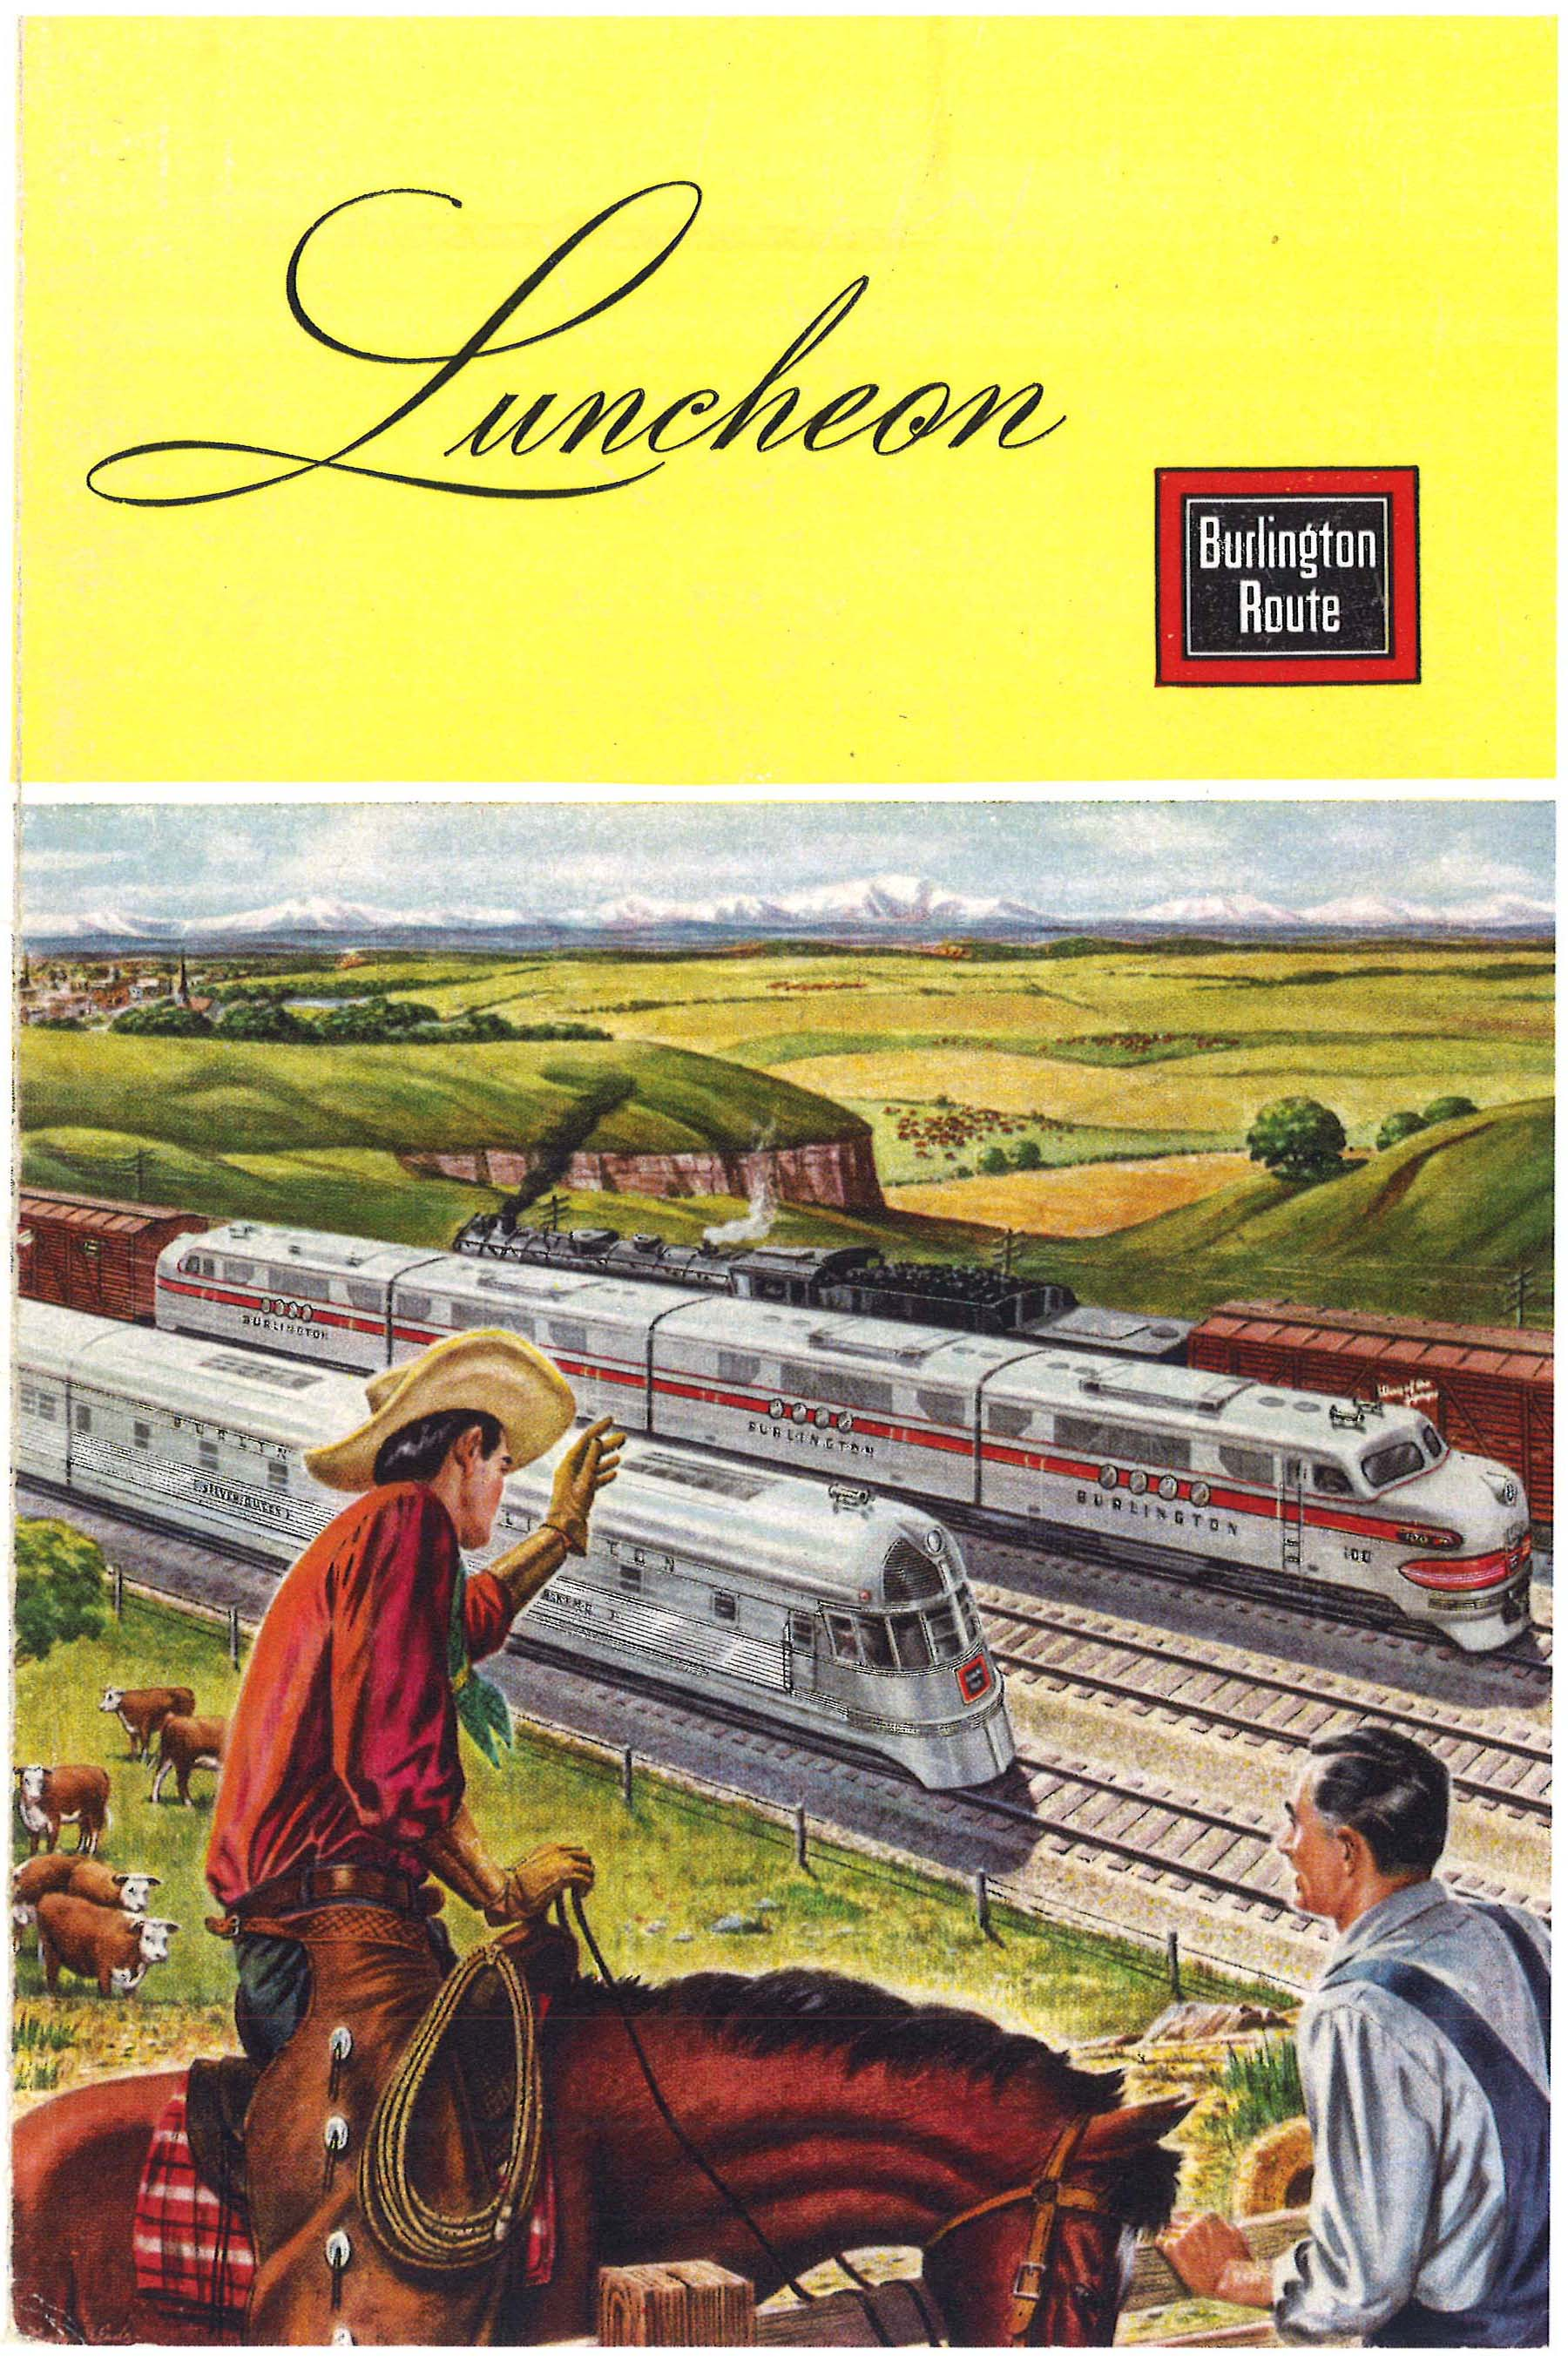 Pages from Burlington+2nd+Smok+Special+Train+Lunch+Menu+6-51 1a.jpg